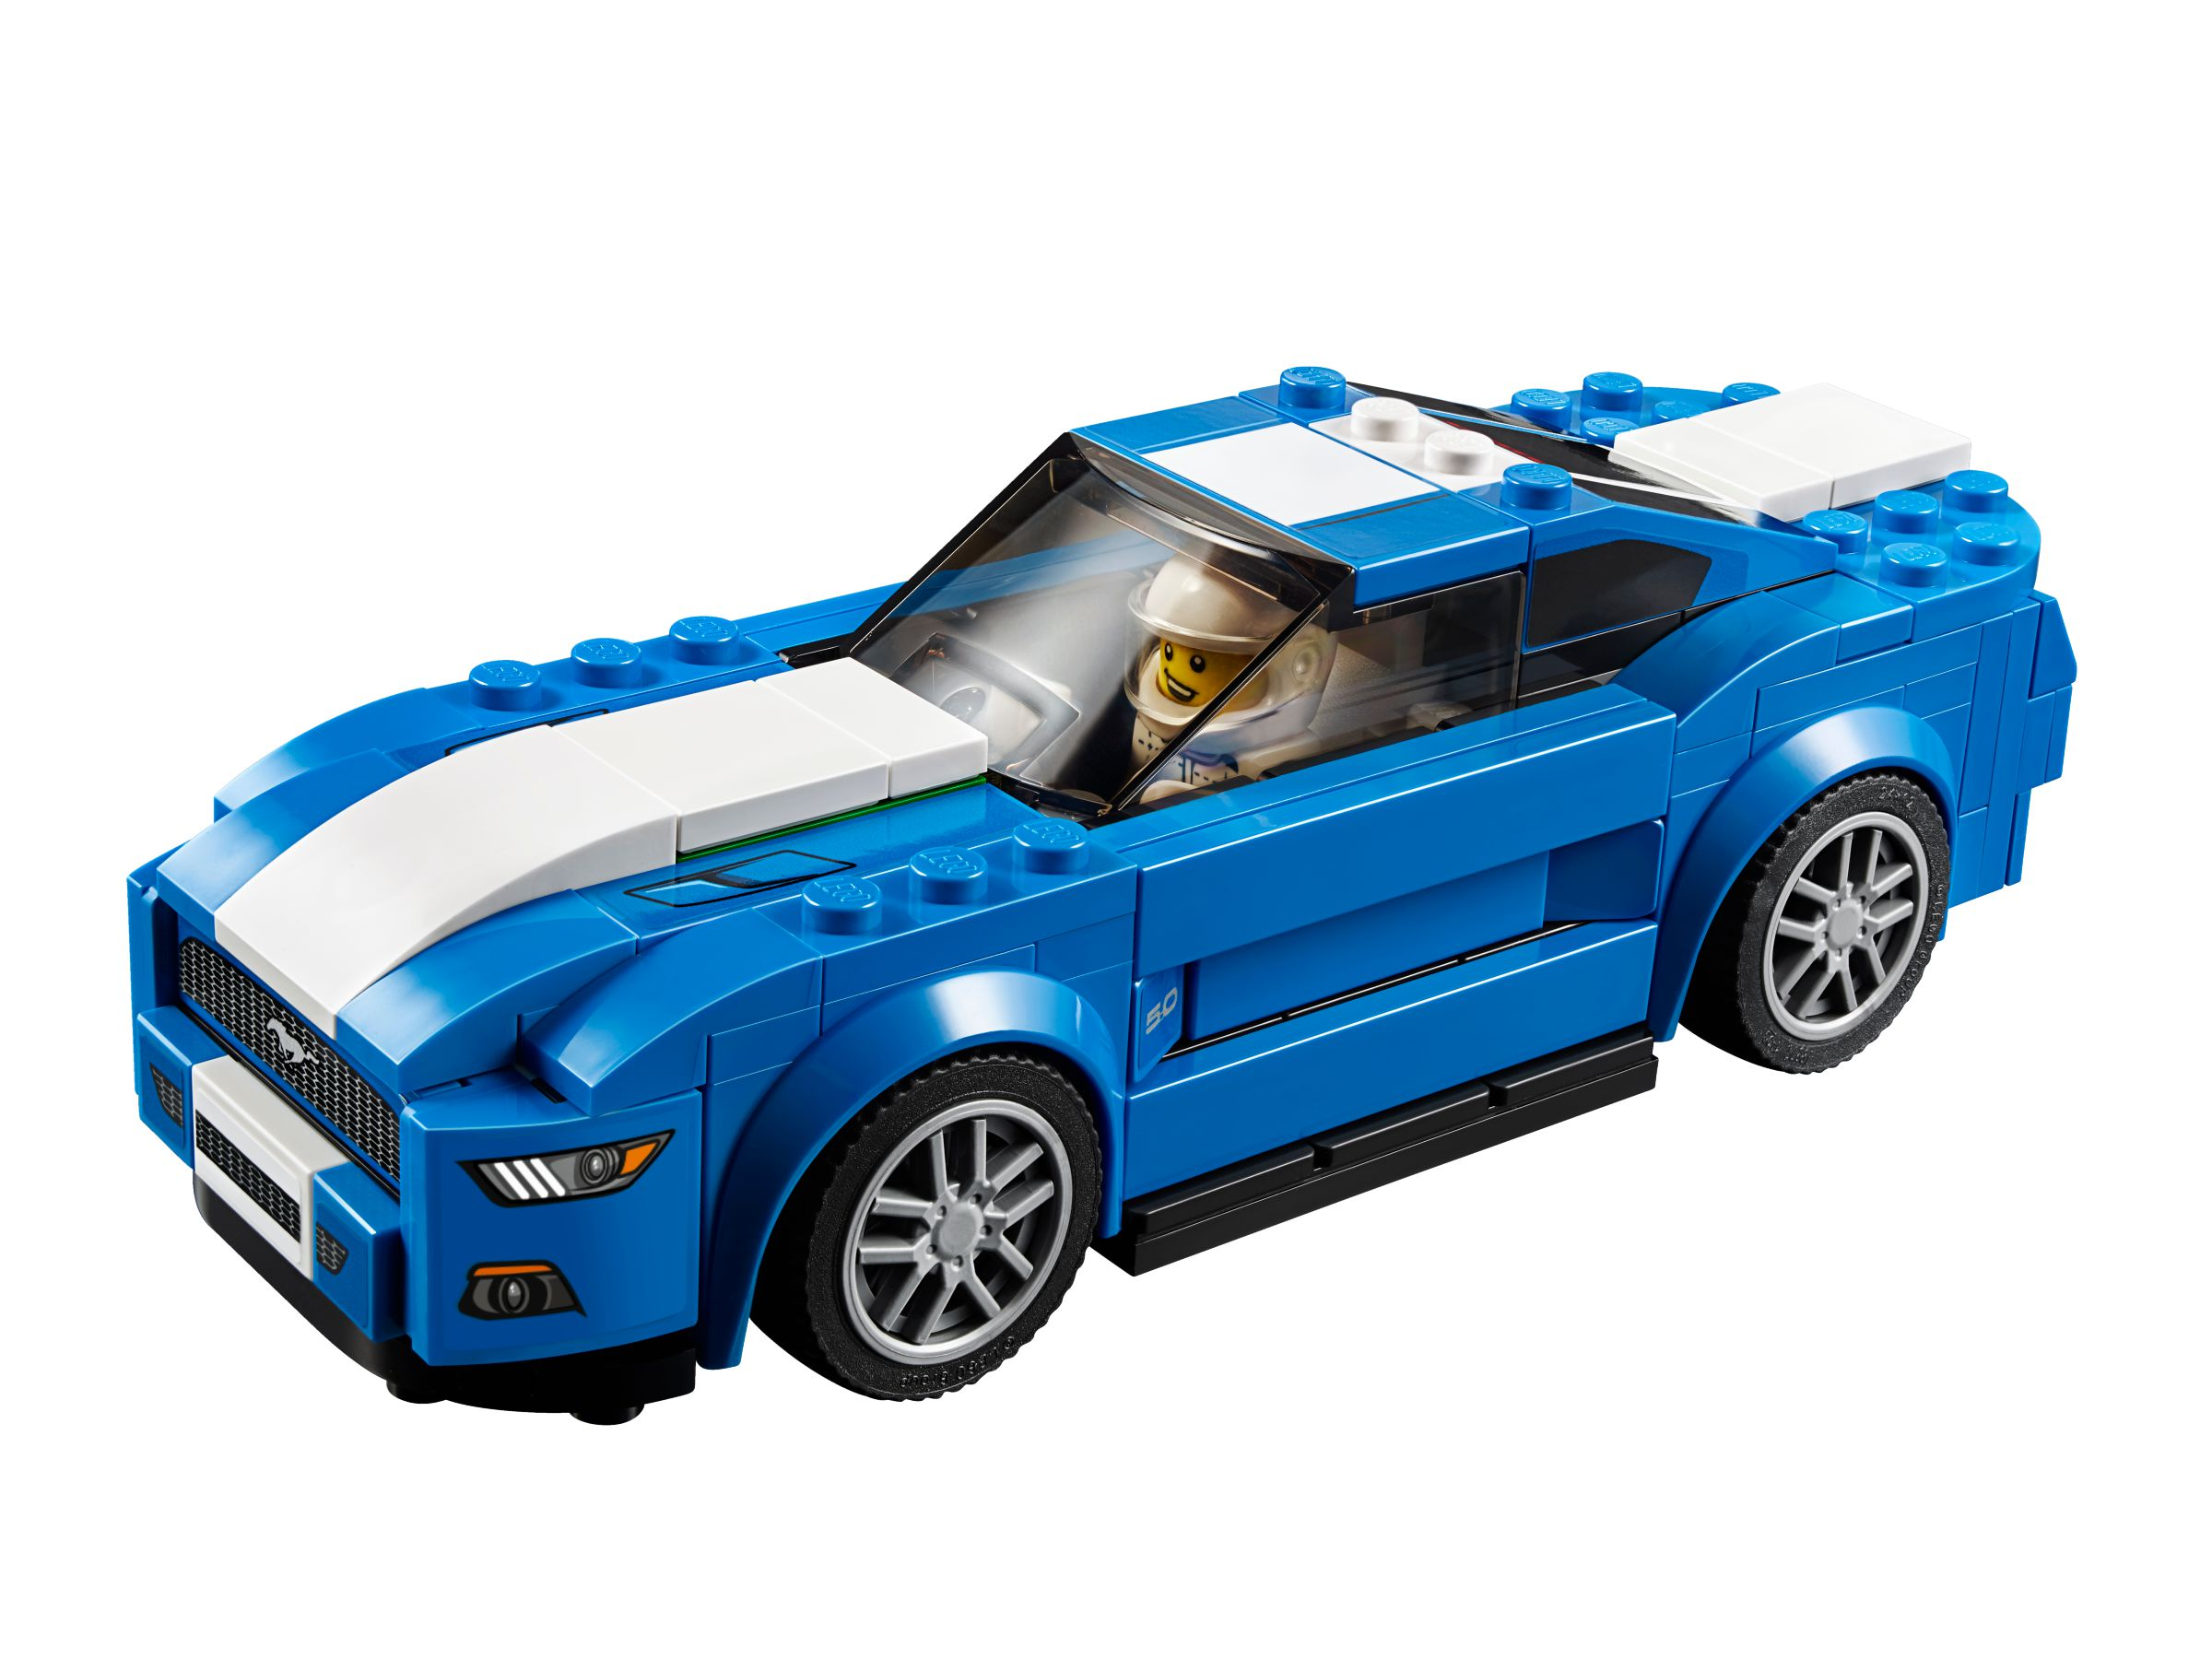 LEGO Speed Champions 75871 Ford Mustang GT LEGO_75871_alt2.jpg